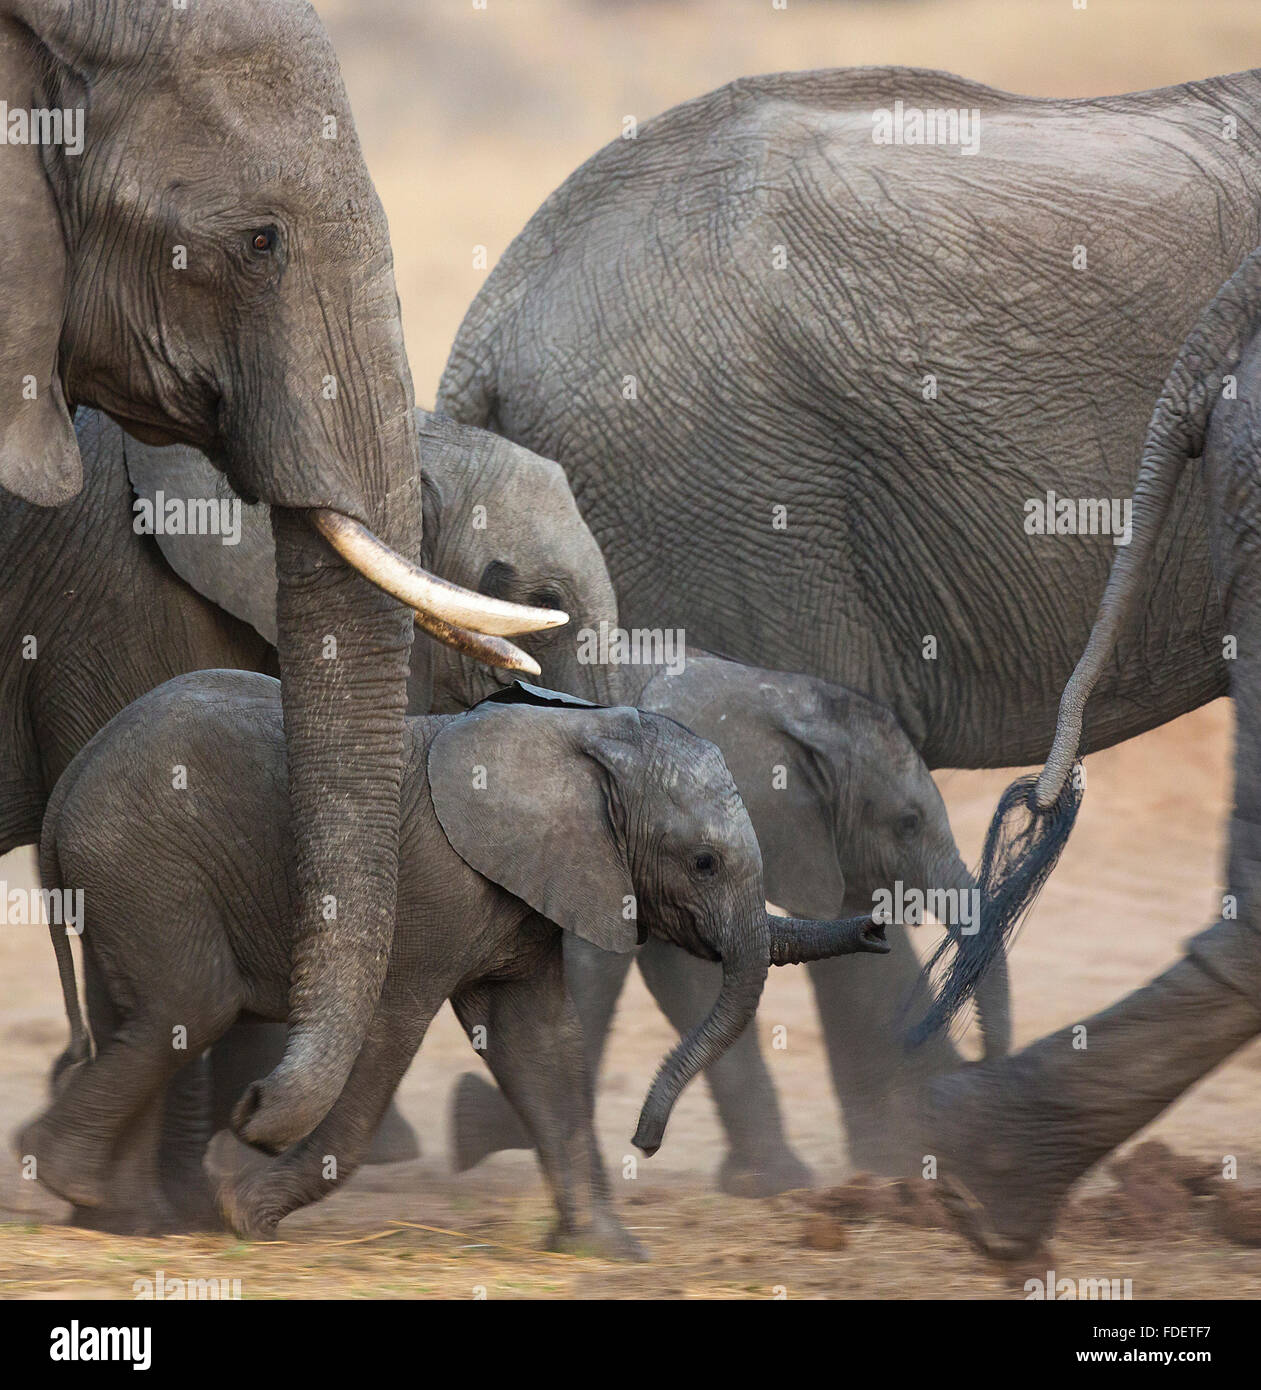 Close up of baby elephants walking in the midst of a breeding herd on the move, - Stock Image